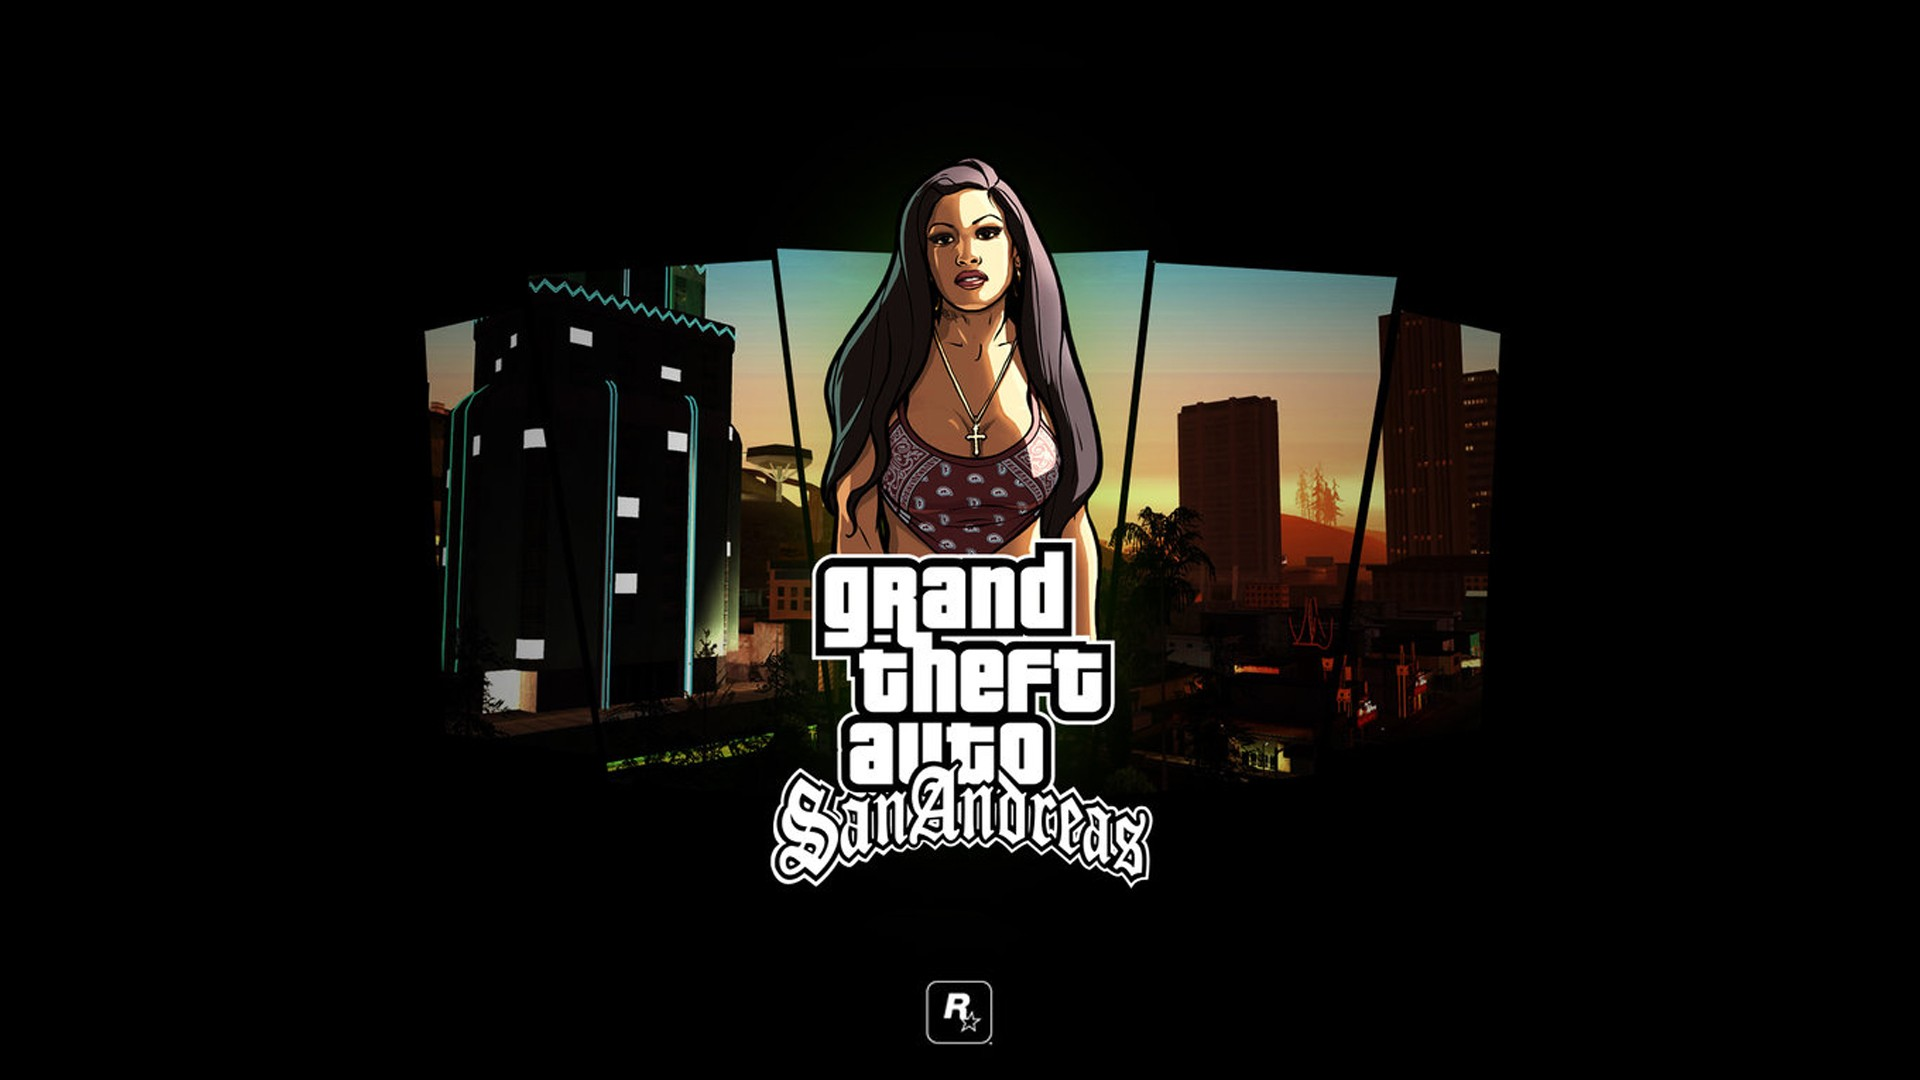 rockstar games essay Comparison and contrast essay two video games - part 2 - video game essay example now 2001 developed by dma design in united kingdom and publish by rockstar games this game is a first 3d game in the series of grand theft auto.